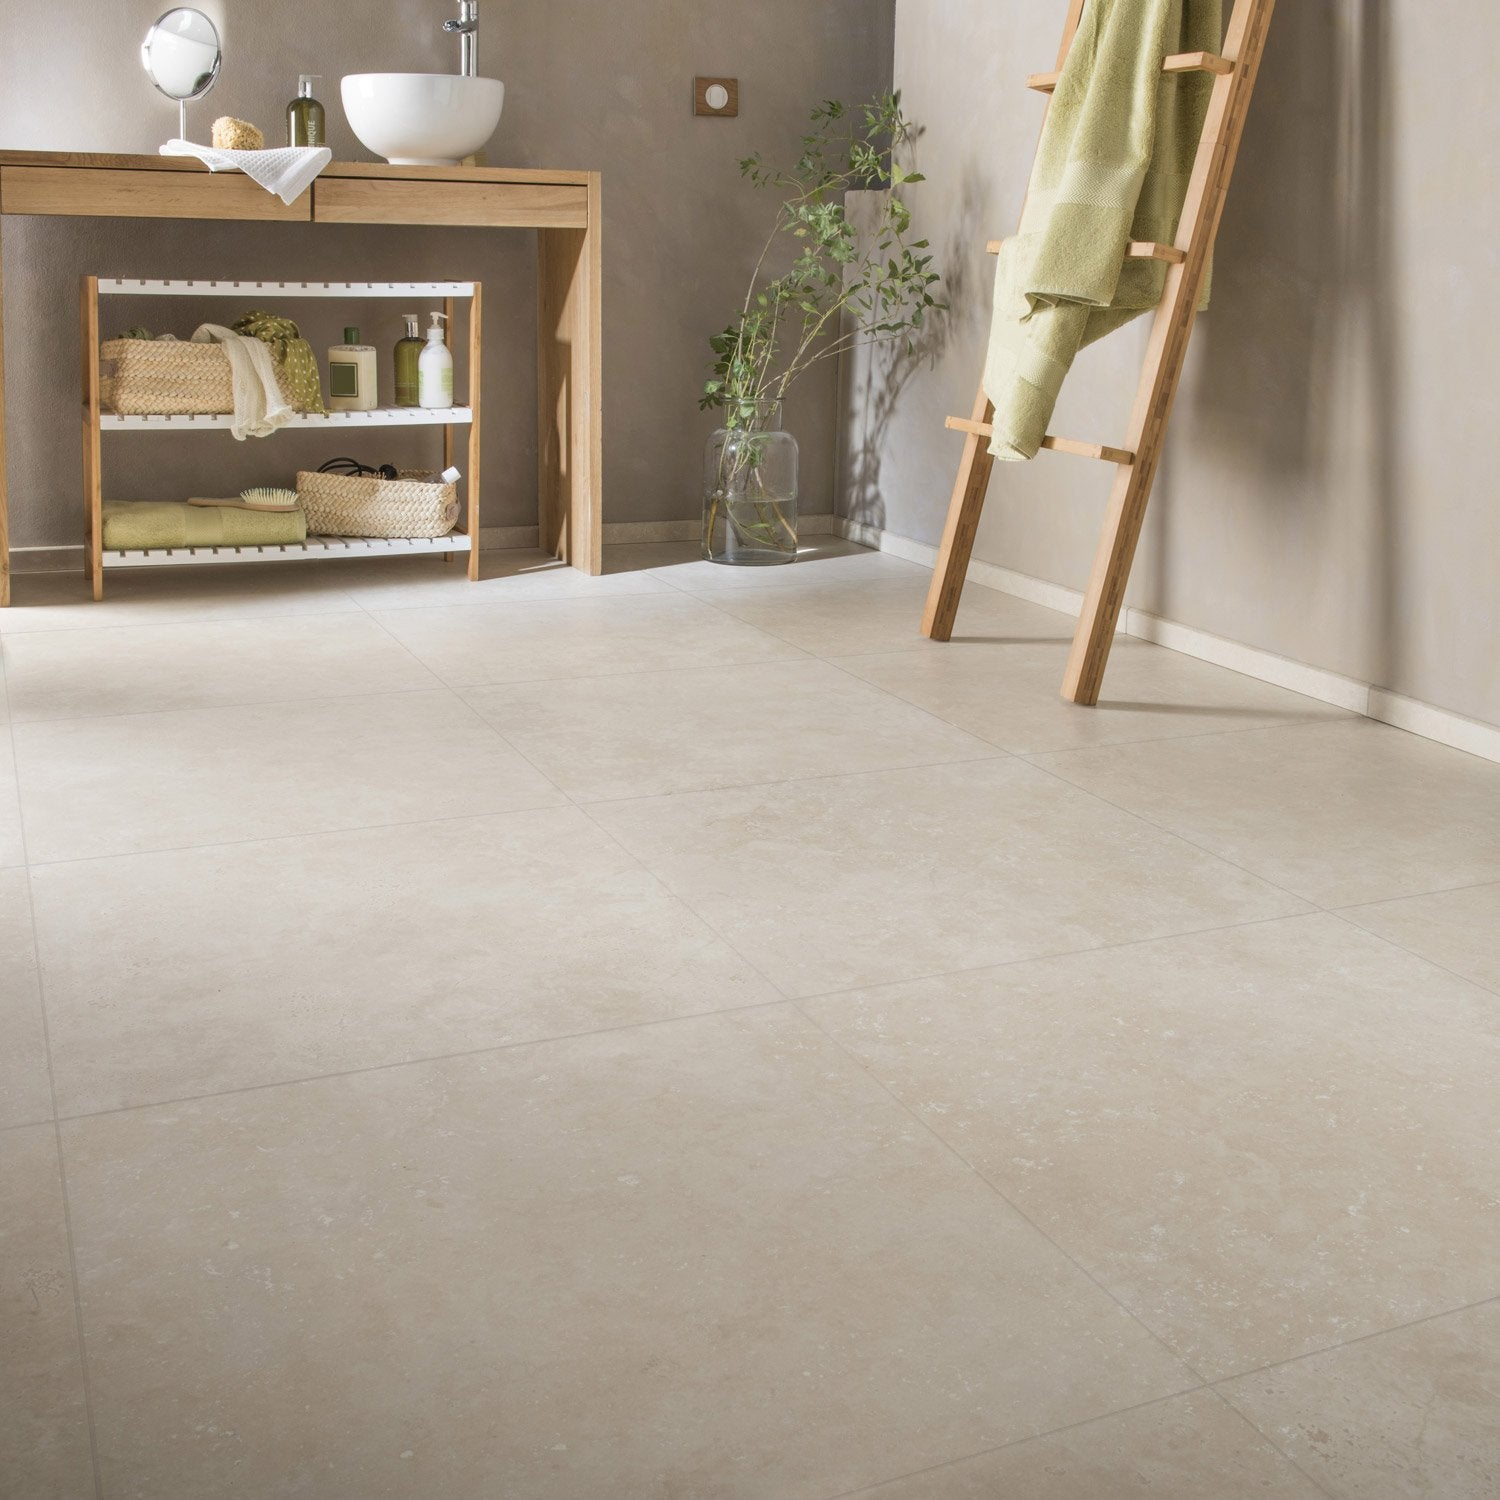 Carrelage design carrelage effet marbre moderne design for Carrelage 60 x 60